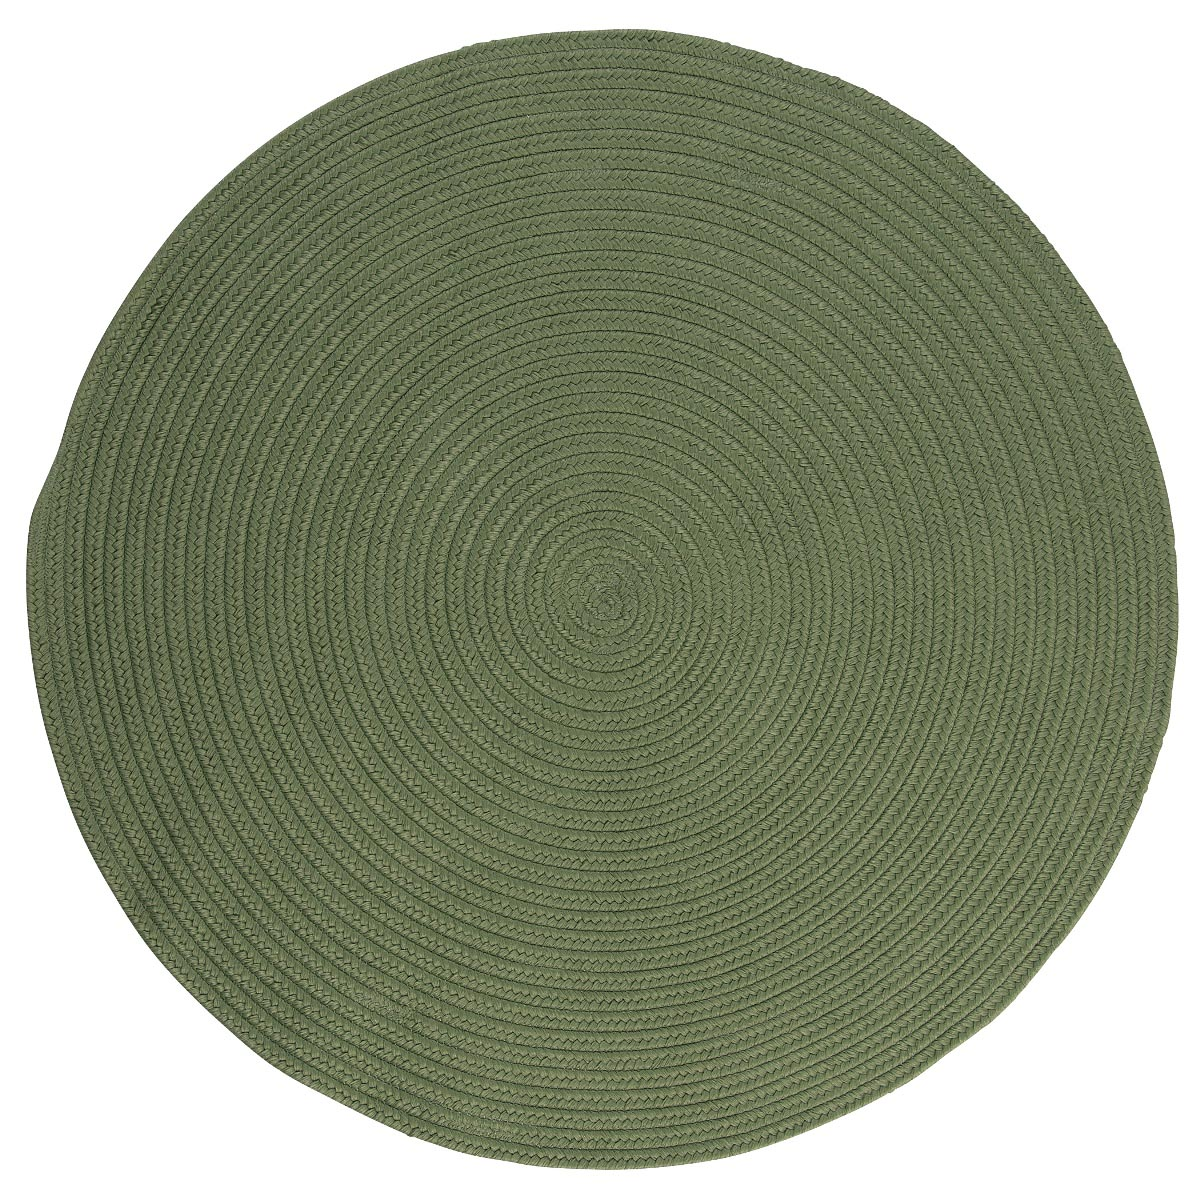 Boca Raton Moss Green Outdoor Braided Round Rugs